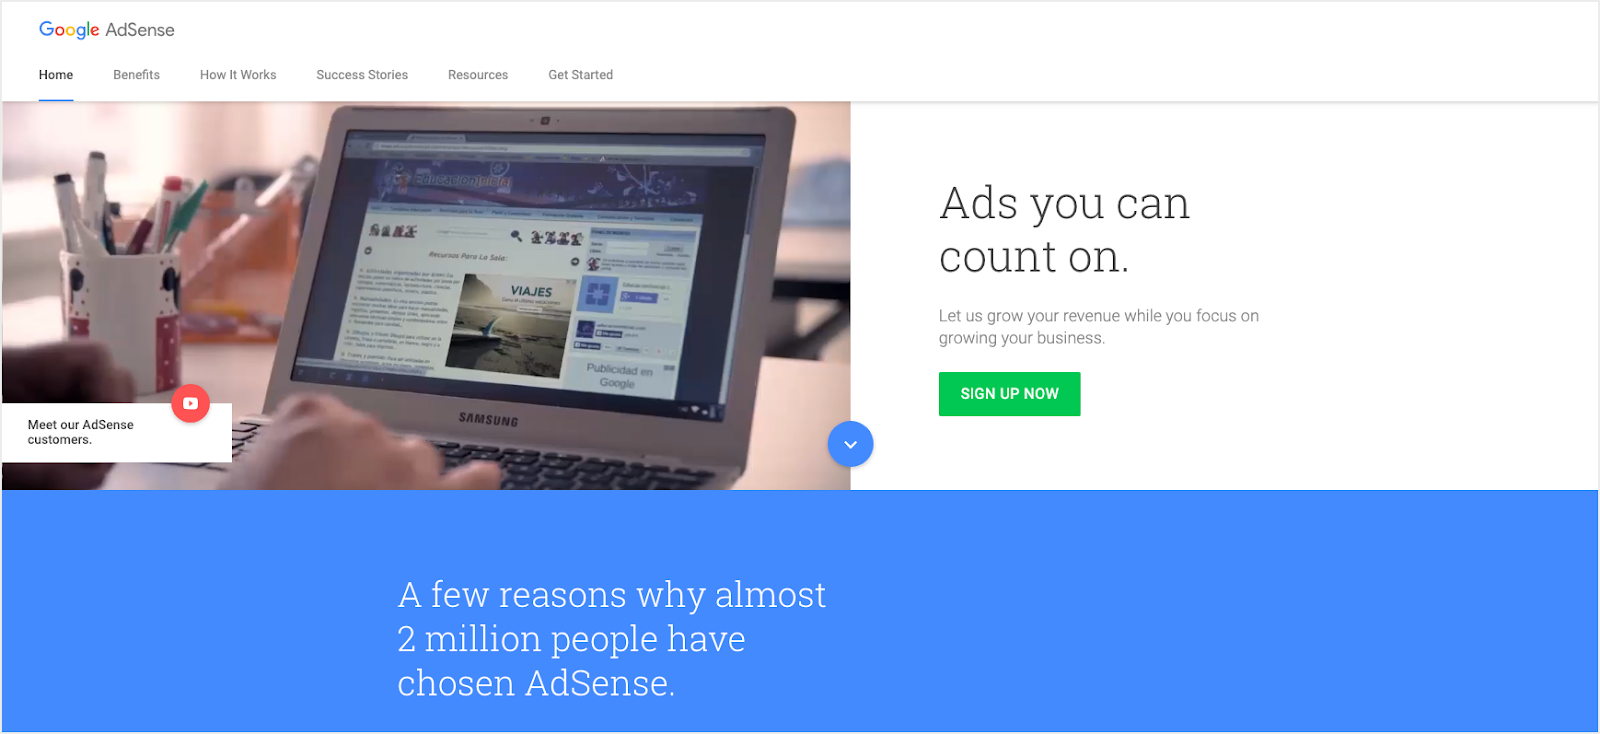 On-site Advertising like Google Adsense for Online Business